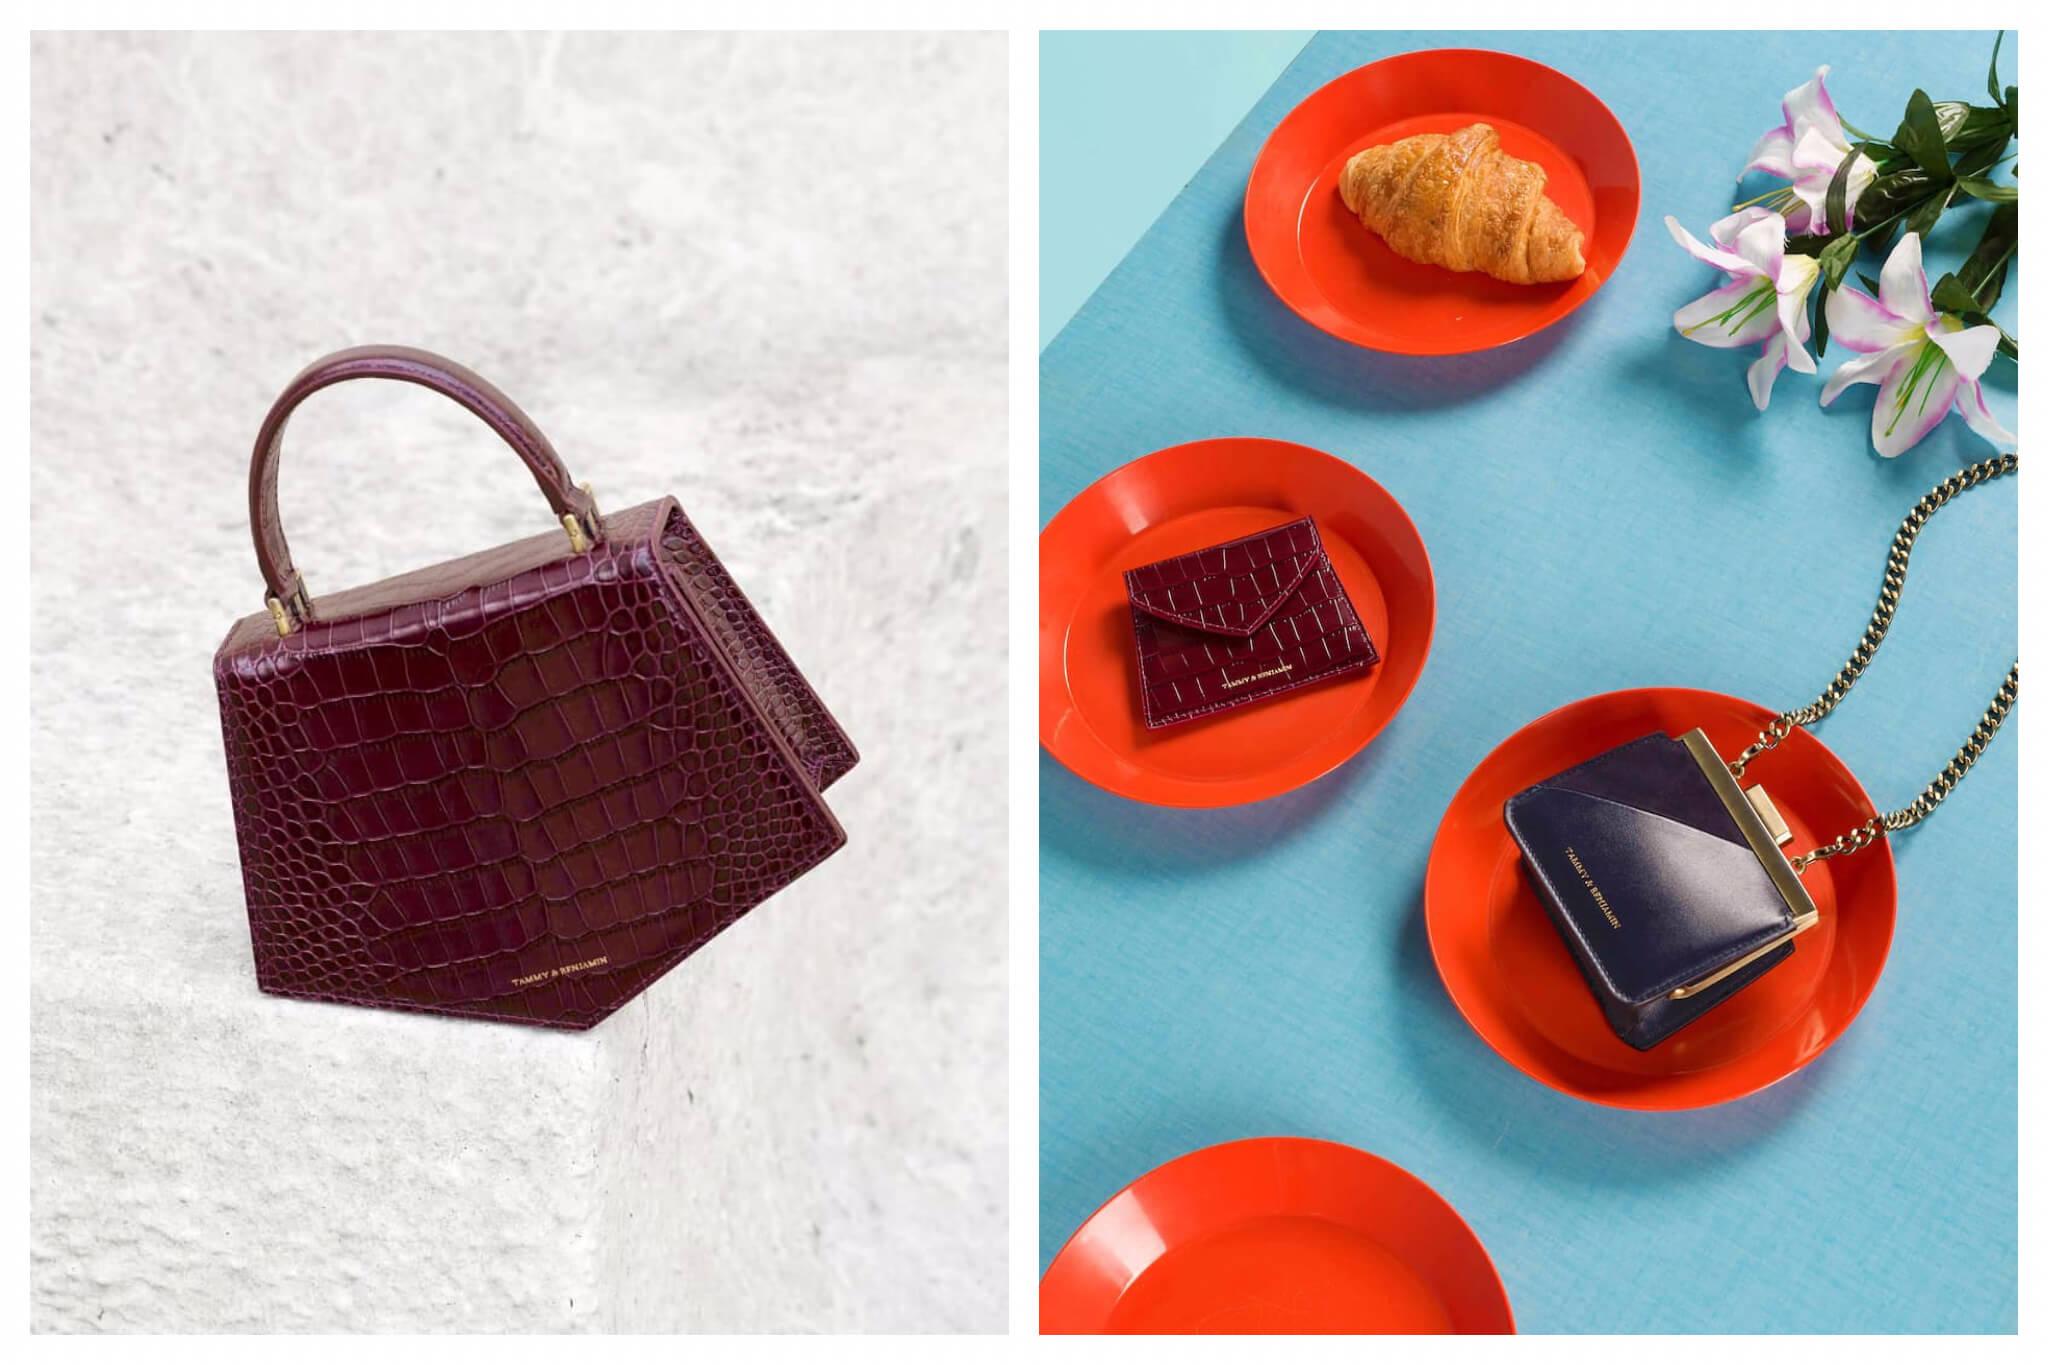 Left and right, how to enjoy Paris without traveling to the city includes shopping for Parisian style online like these dark red snakeskin handbags.